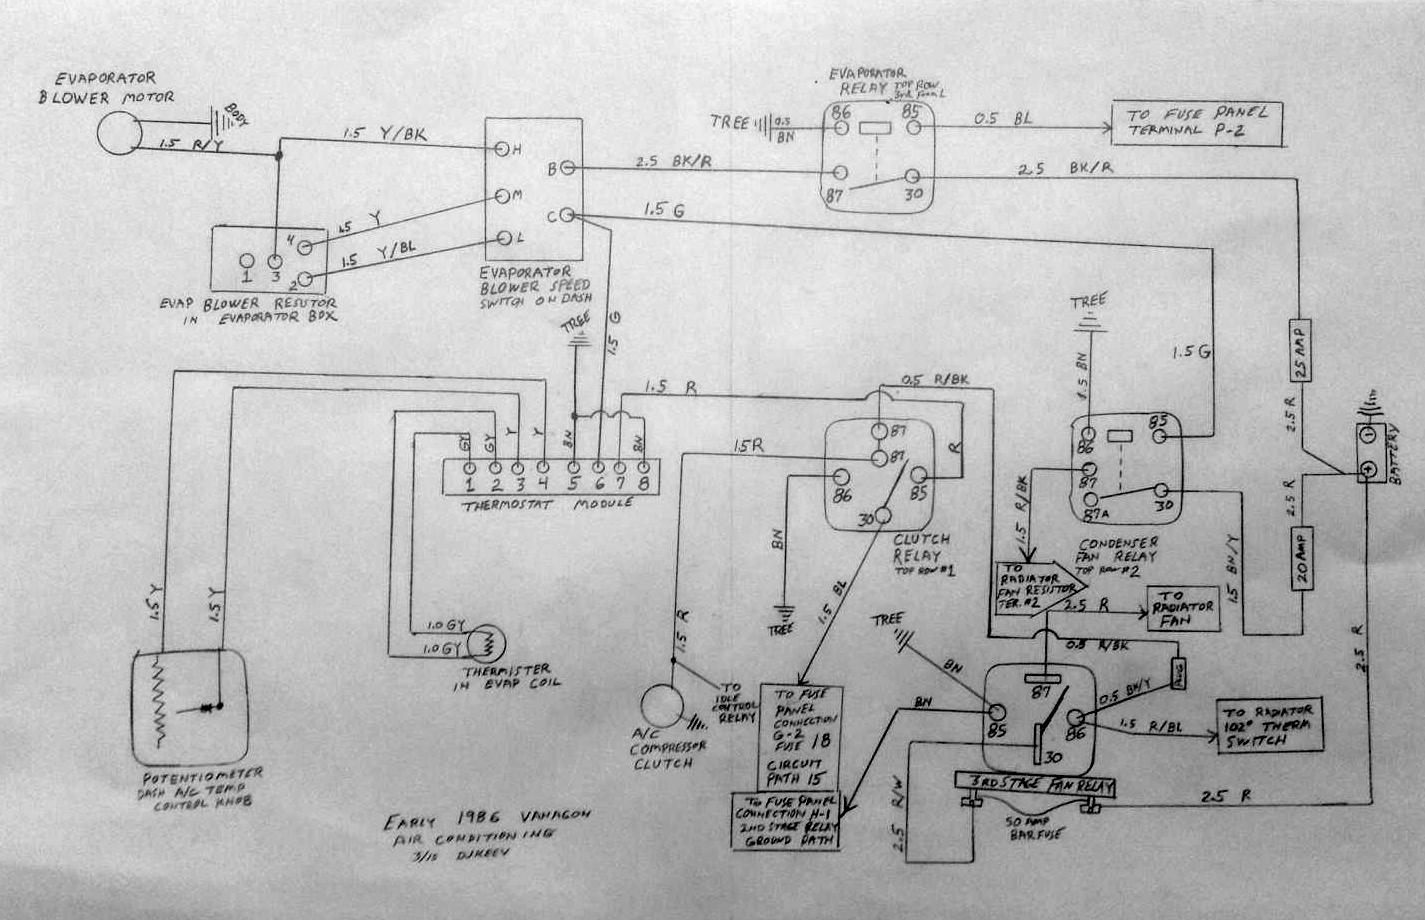 hight resolution of thesamba com vanagon view topic air conditioner system vanagon ac wiring diagram